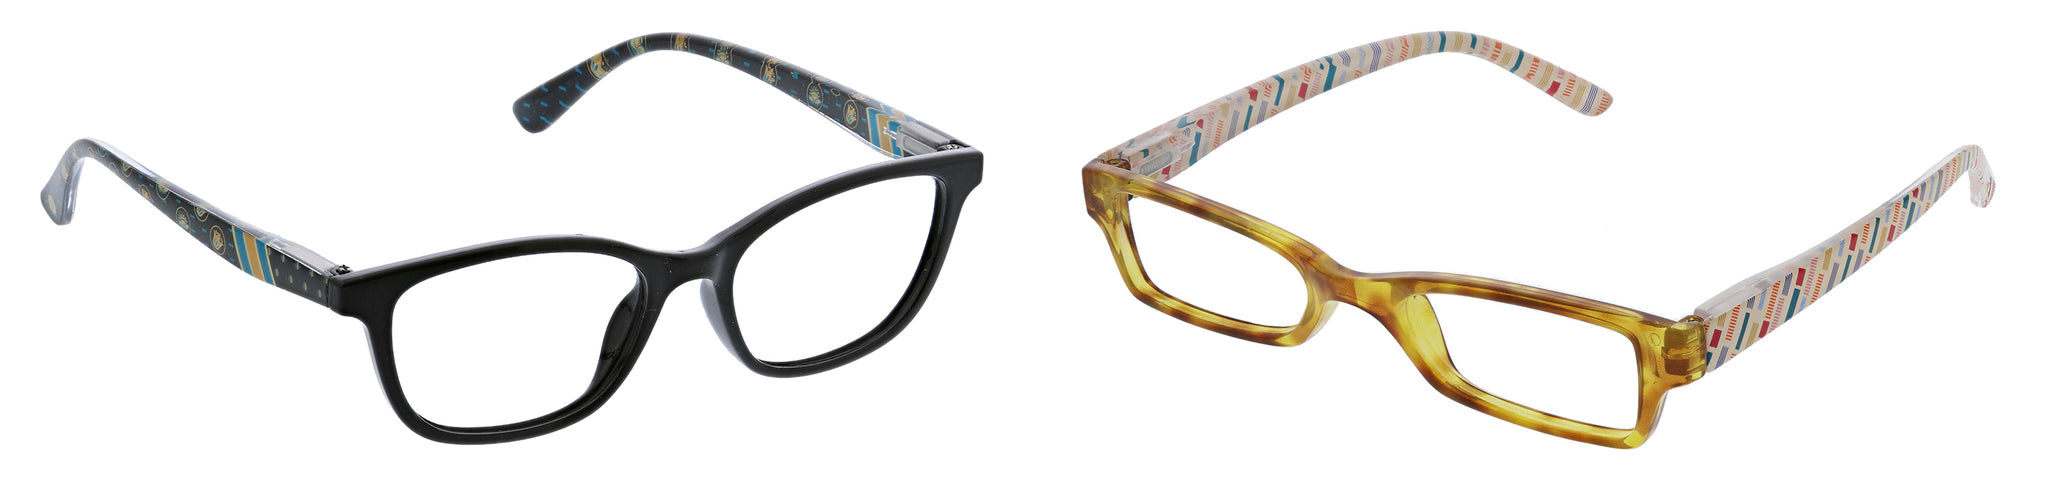 Peepers by PeeperSpecs Lore in black and Copenhagen in honey tortoise blue light reading glasses